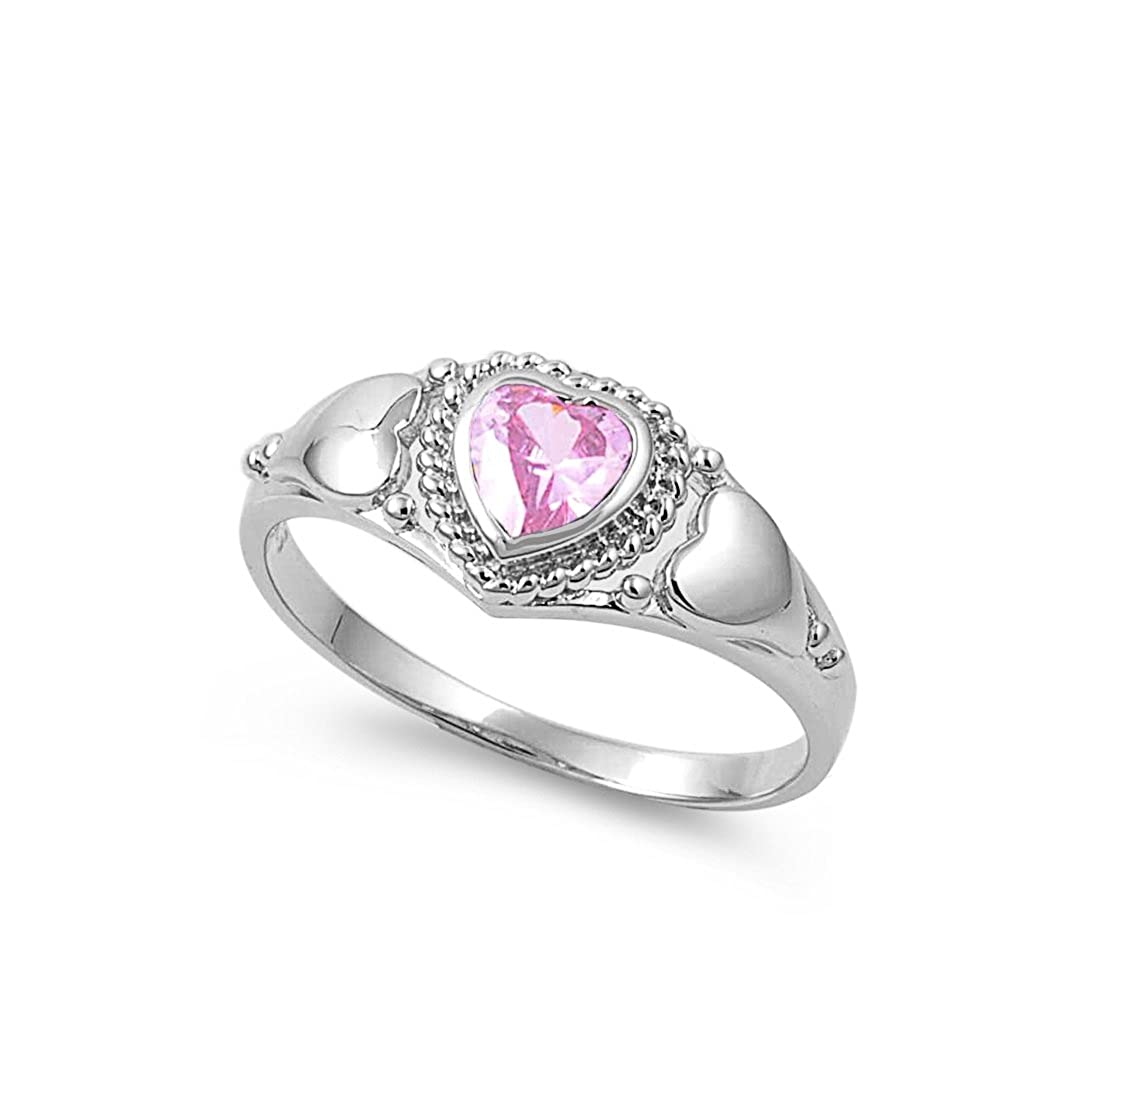 CloseoutWarehouse Heart Cubic Zirconia Ring Sterling Silver 925